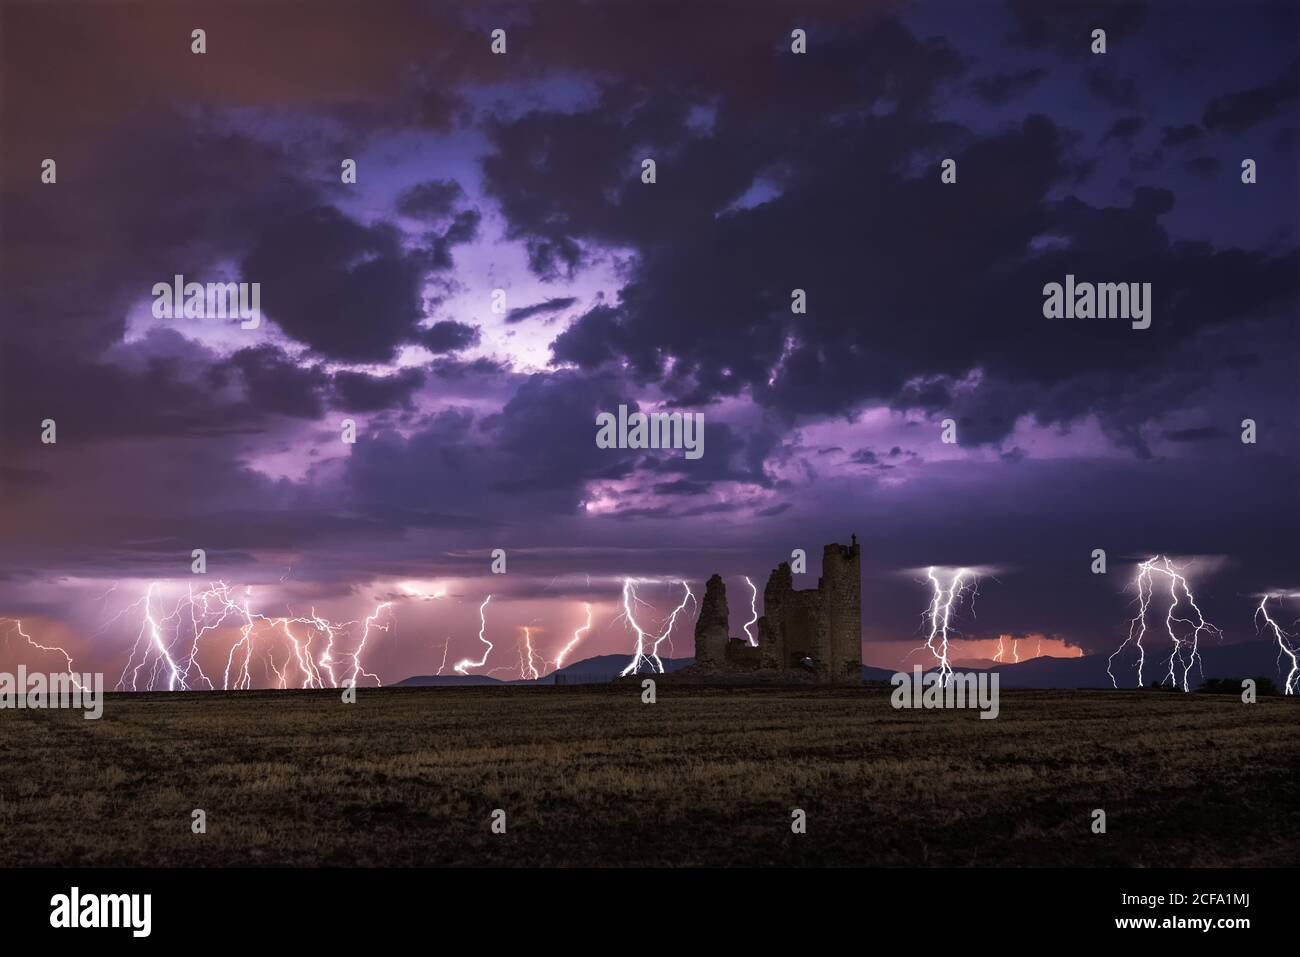 Amazing scenery of lightning storm on colorful cloudy sky over ruined old castle at night Stock Photo